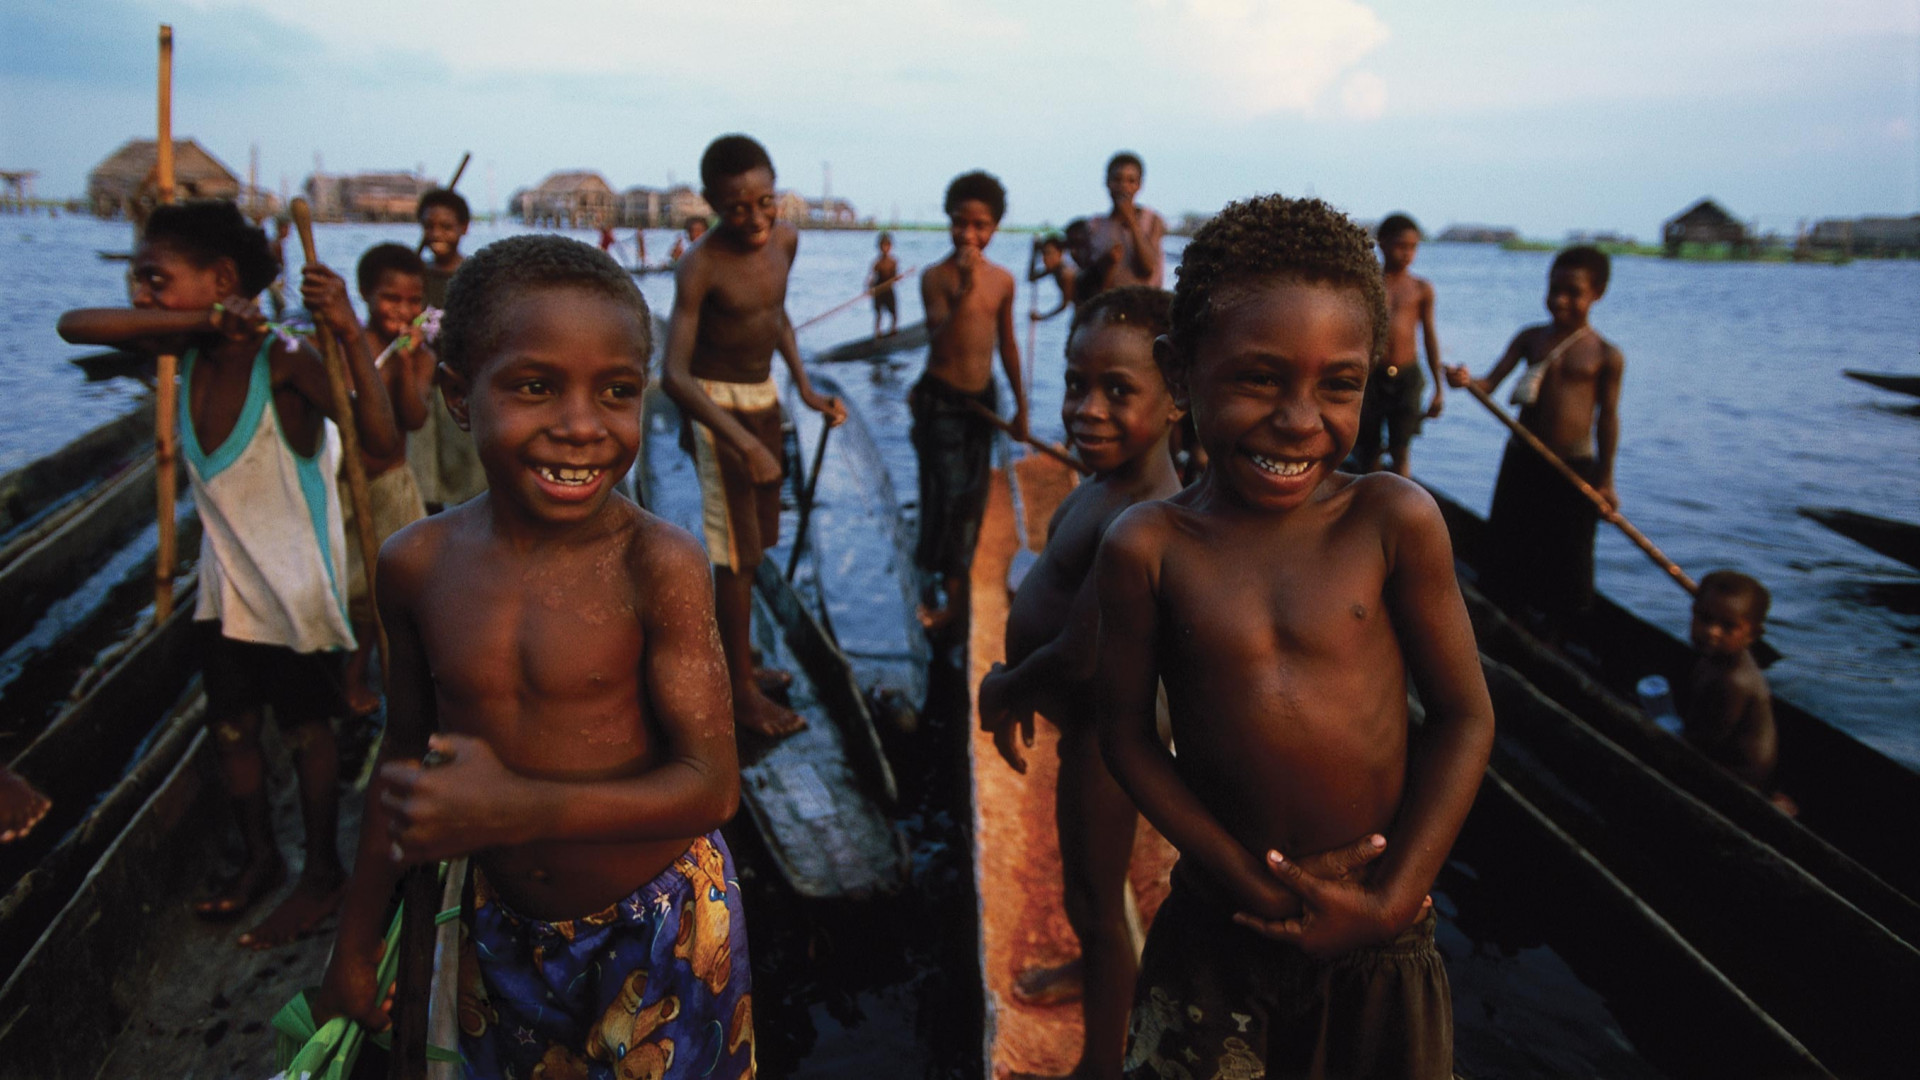 Children from a lake near the mouth of the Sepik river